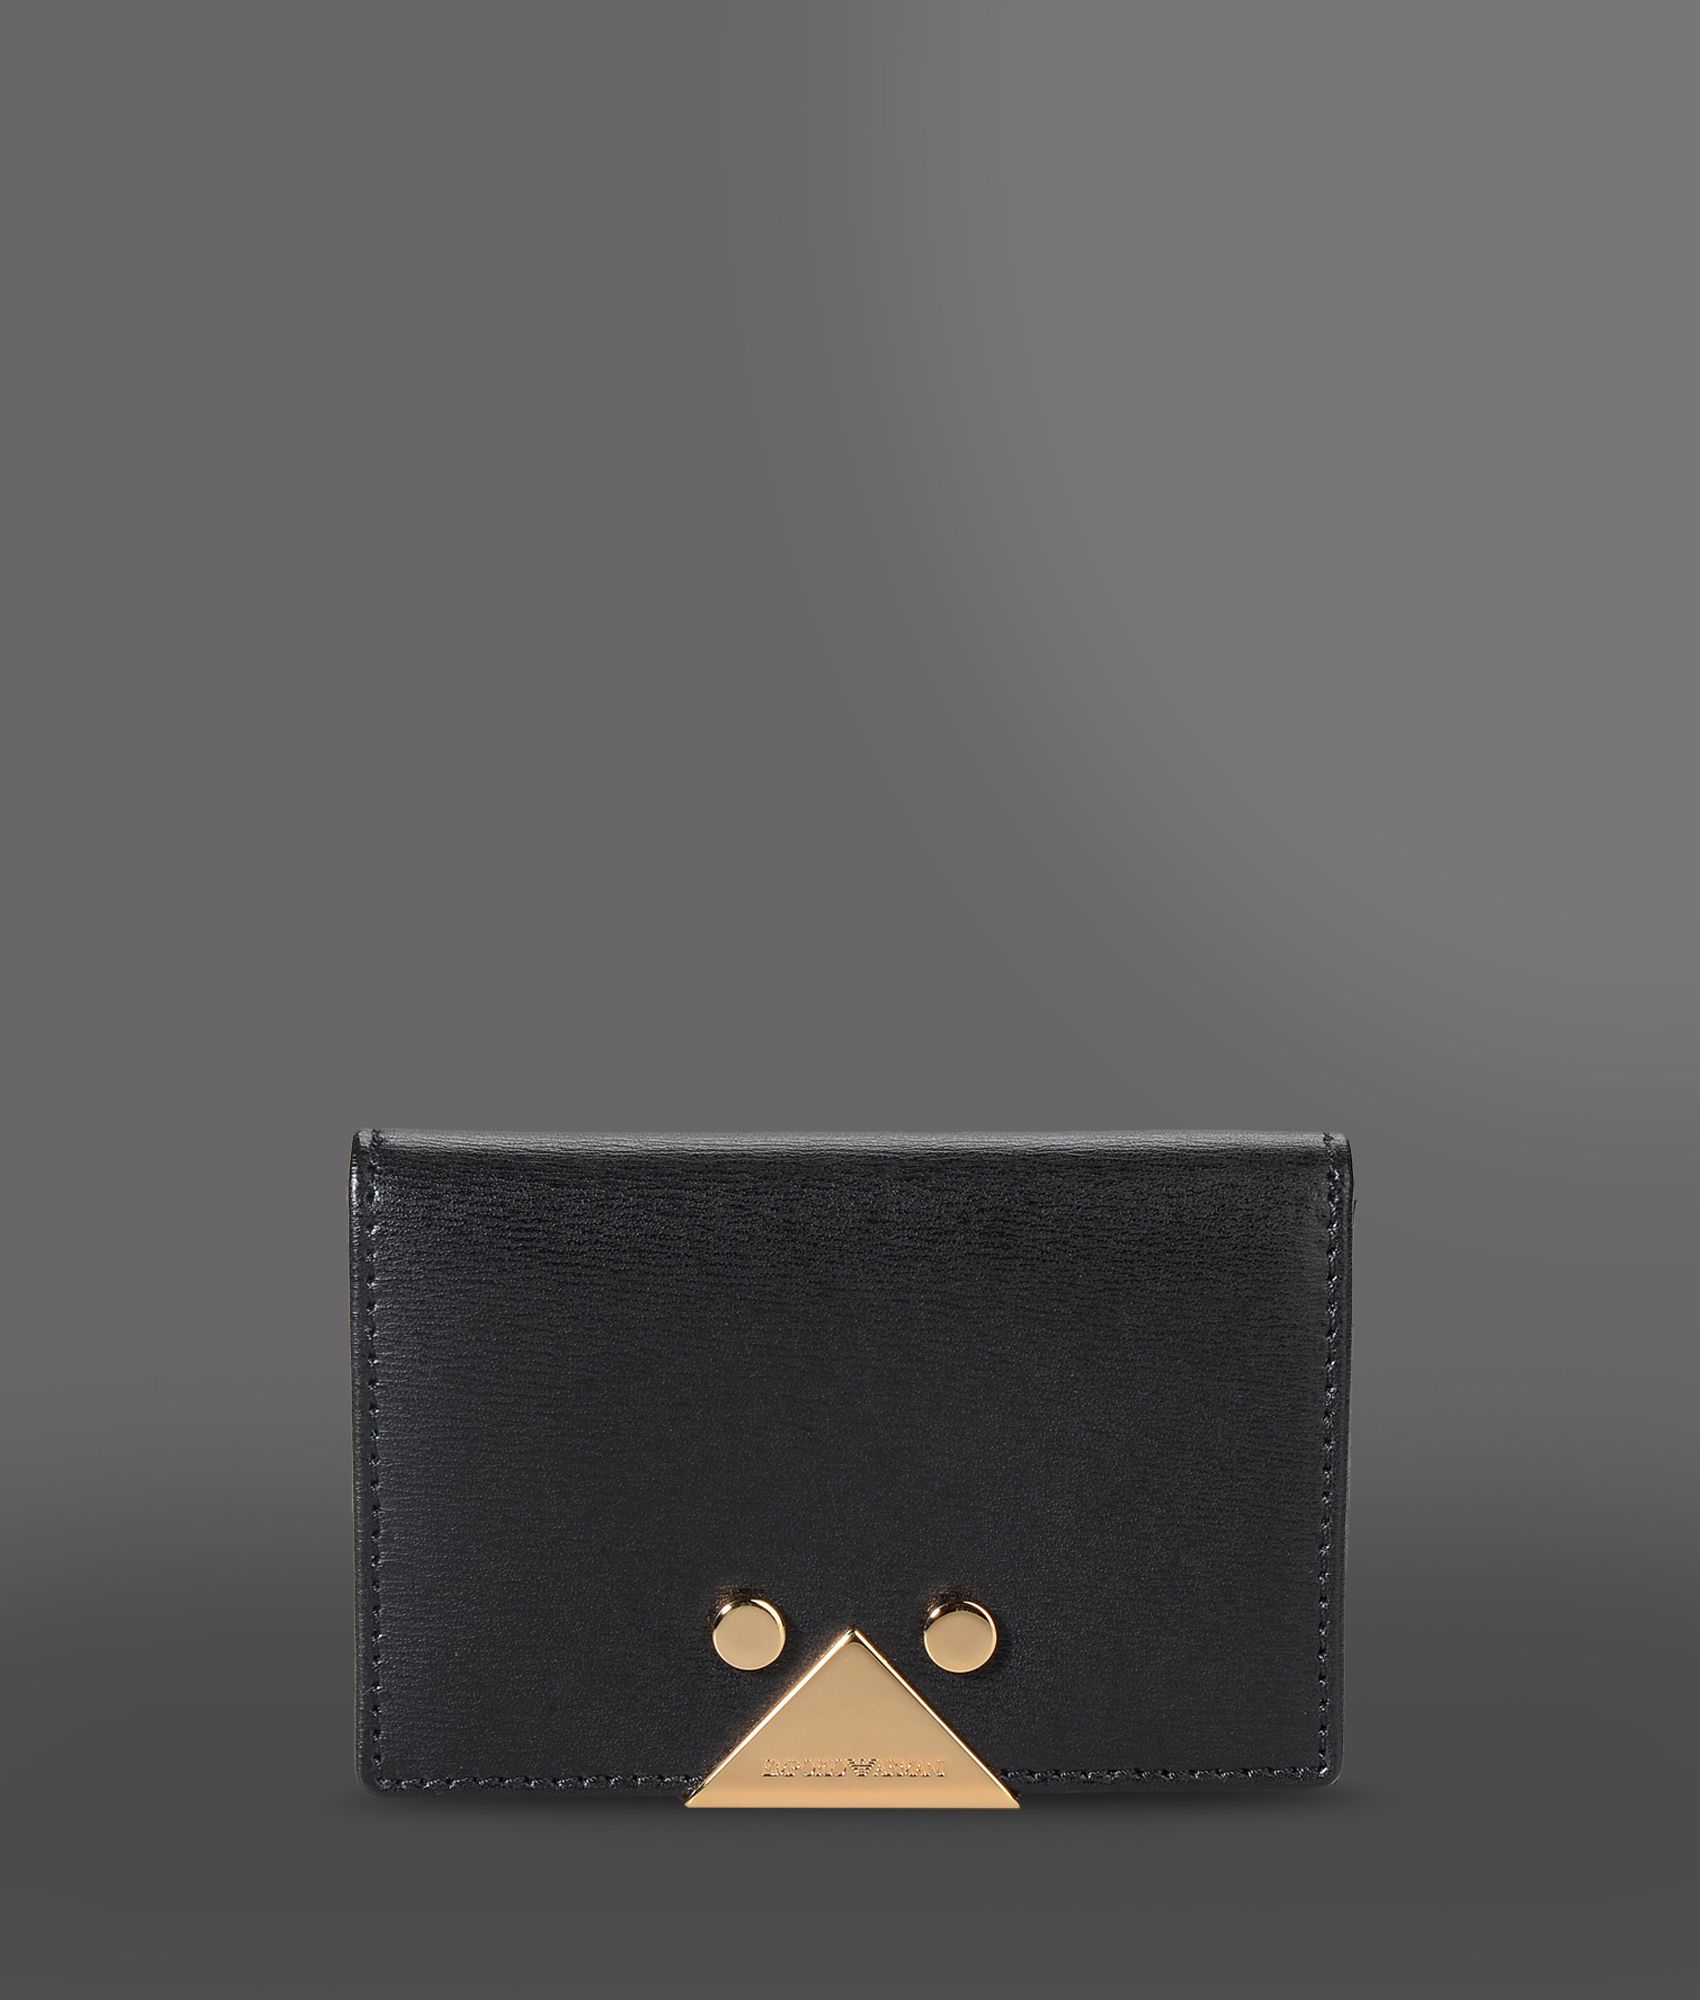 Lyst - Emporio Armani Business Card Holder In Boarded Calfskin in Black